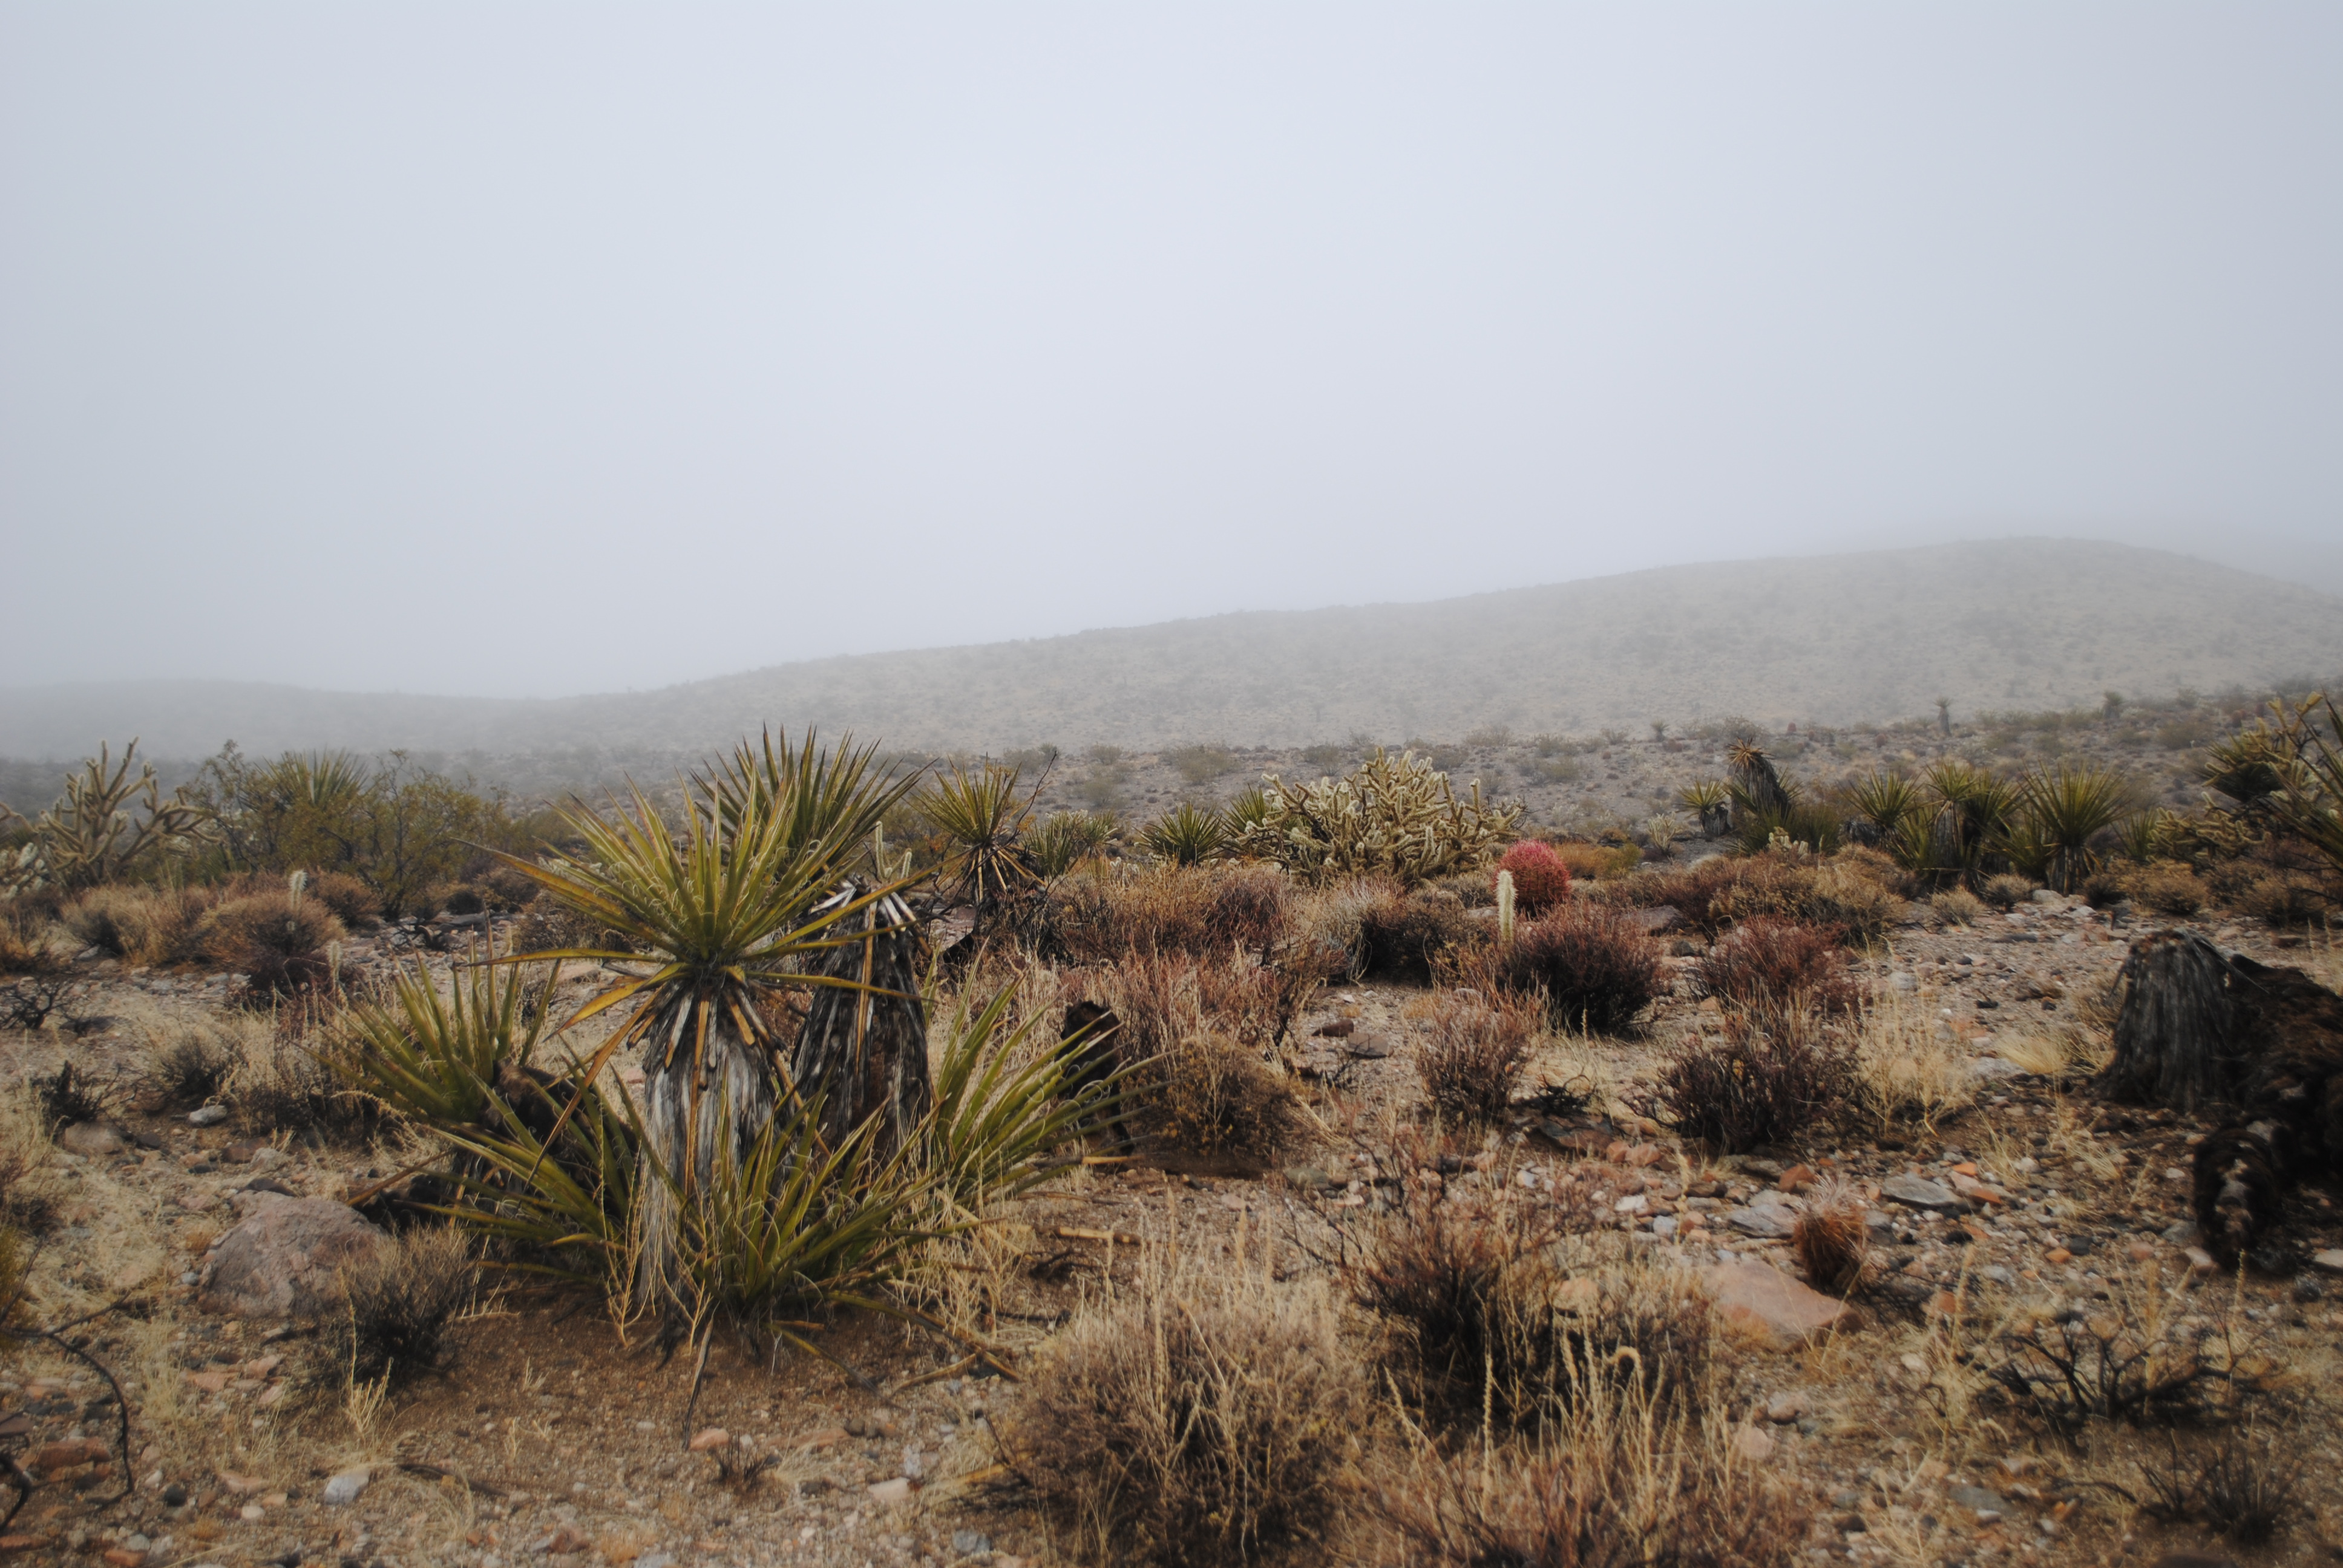 Is that fog? In the desert? Why yes it is. It's winter here, and it's been raining.